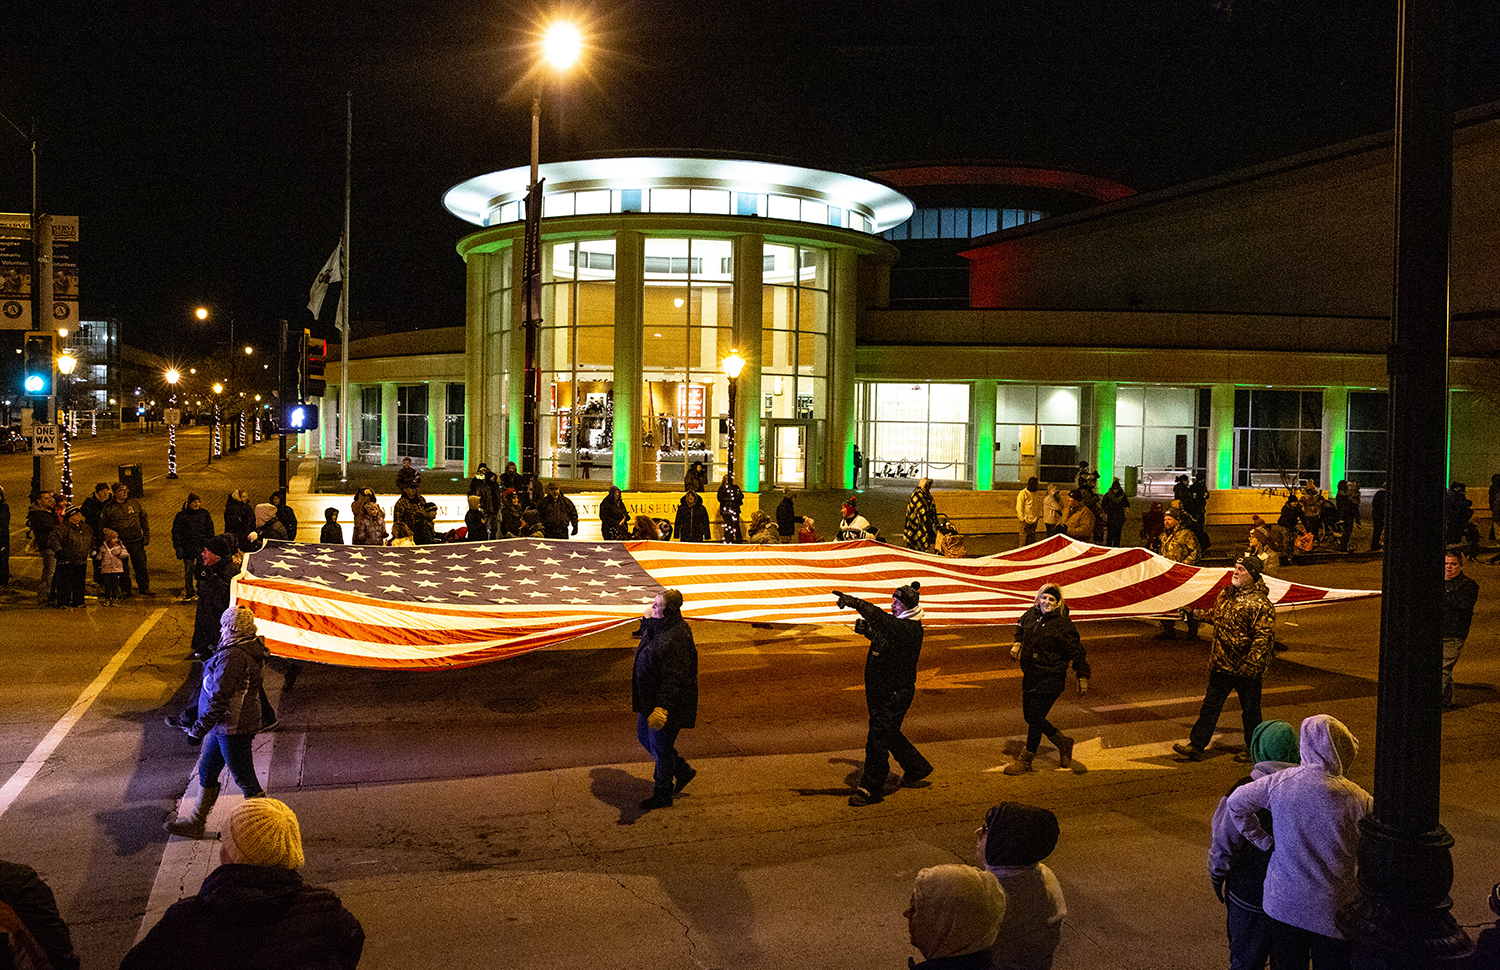 A flag presented by the Elks Lodge 158 passes the Abraham Lincoln Presidential Museum to kick off the Springfield Jaycees Holiday Lights Parade Saturday, Dec. 8, 2018 in Springfield, Ill. [Rich Saal/The State Journal-Register]